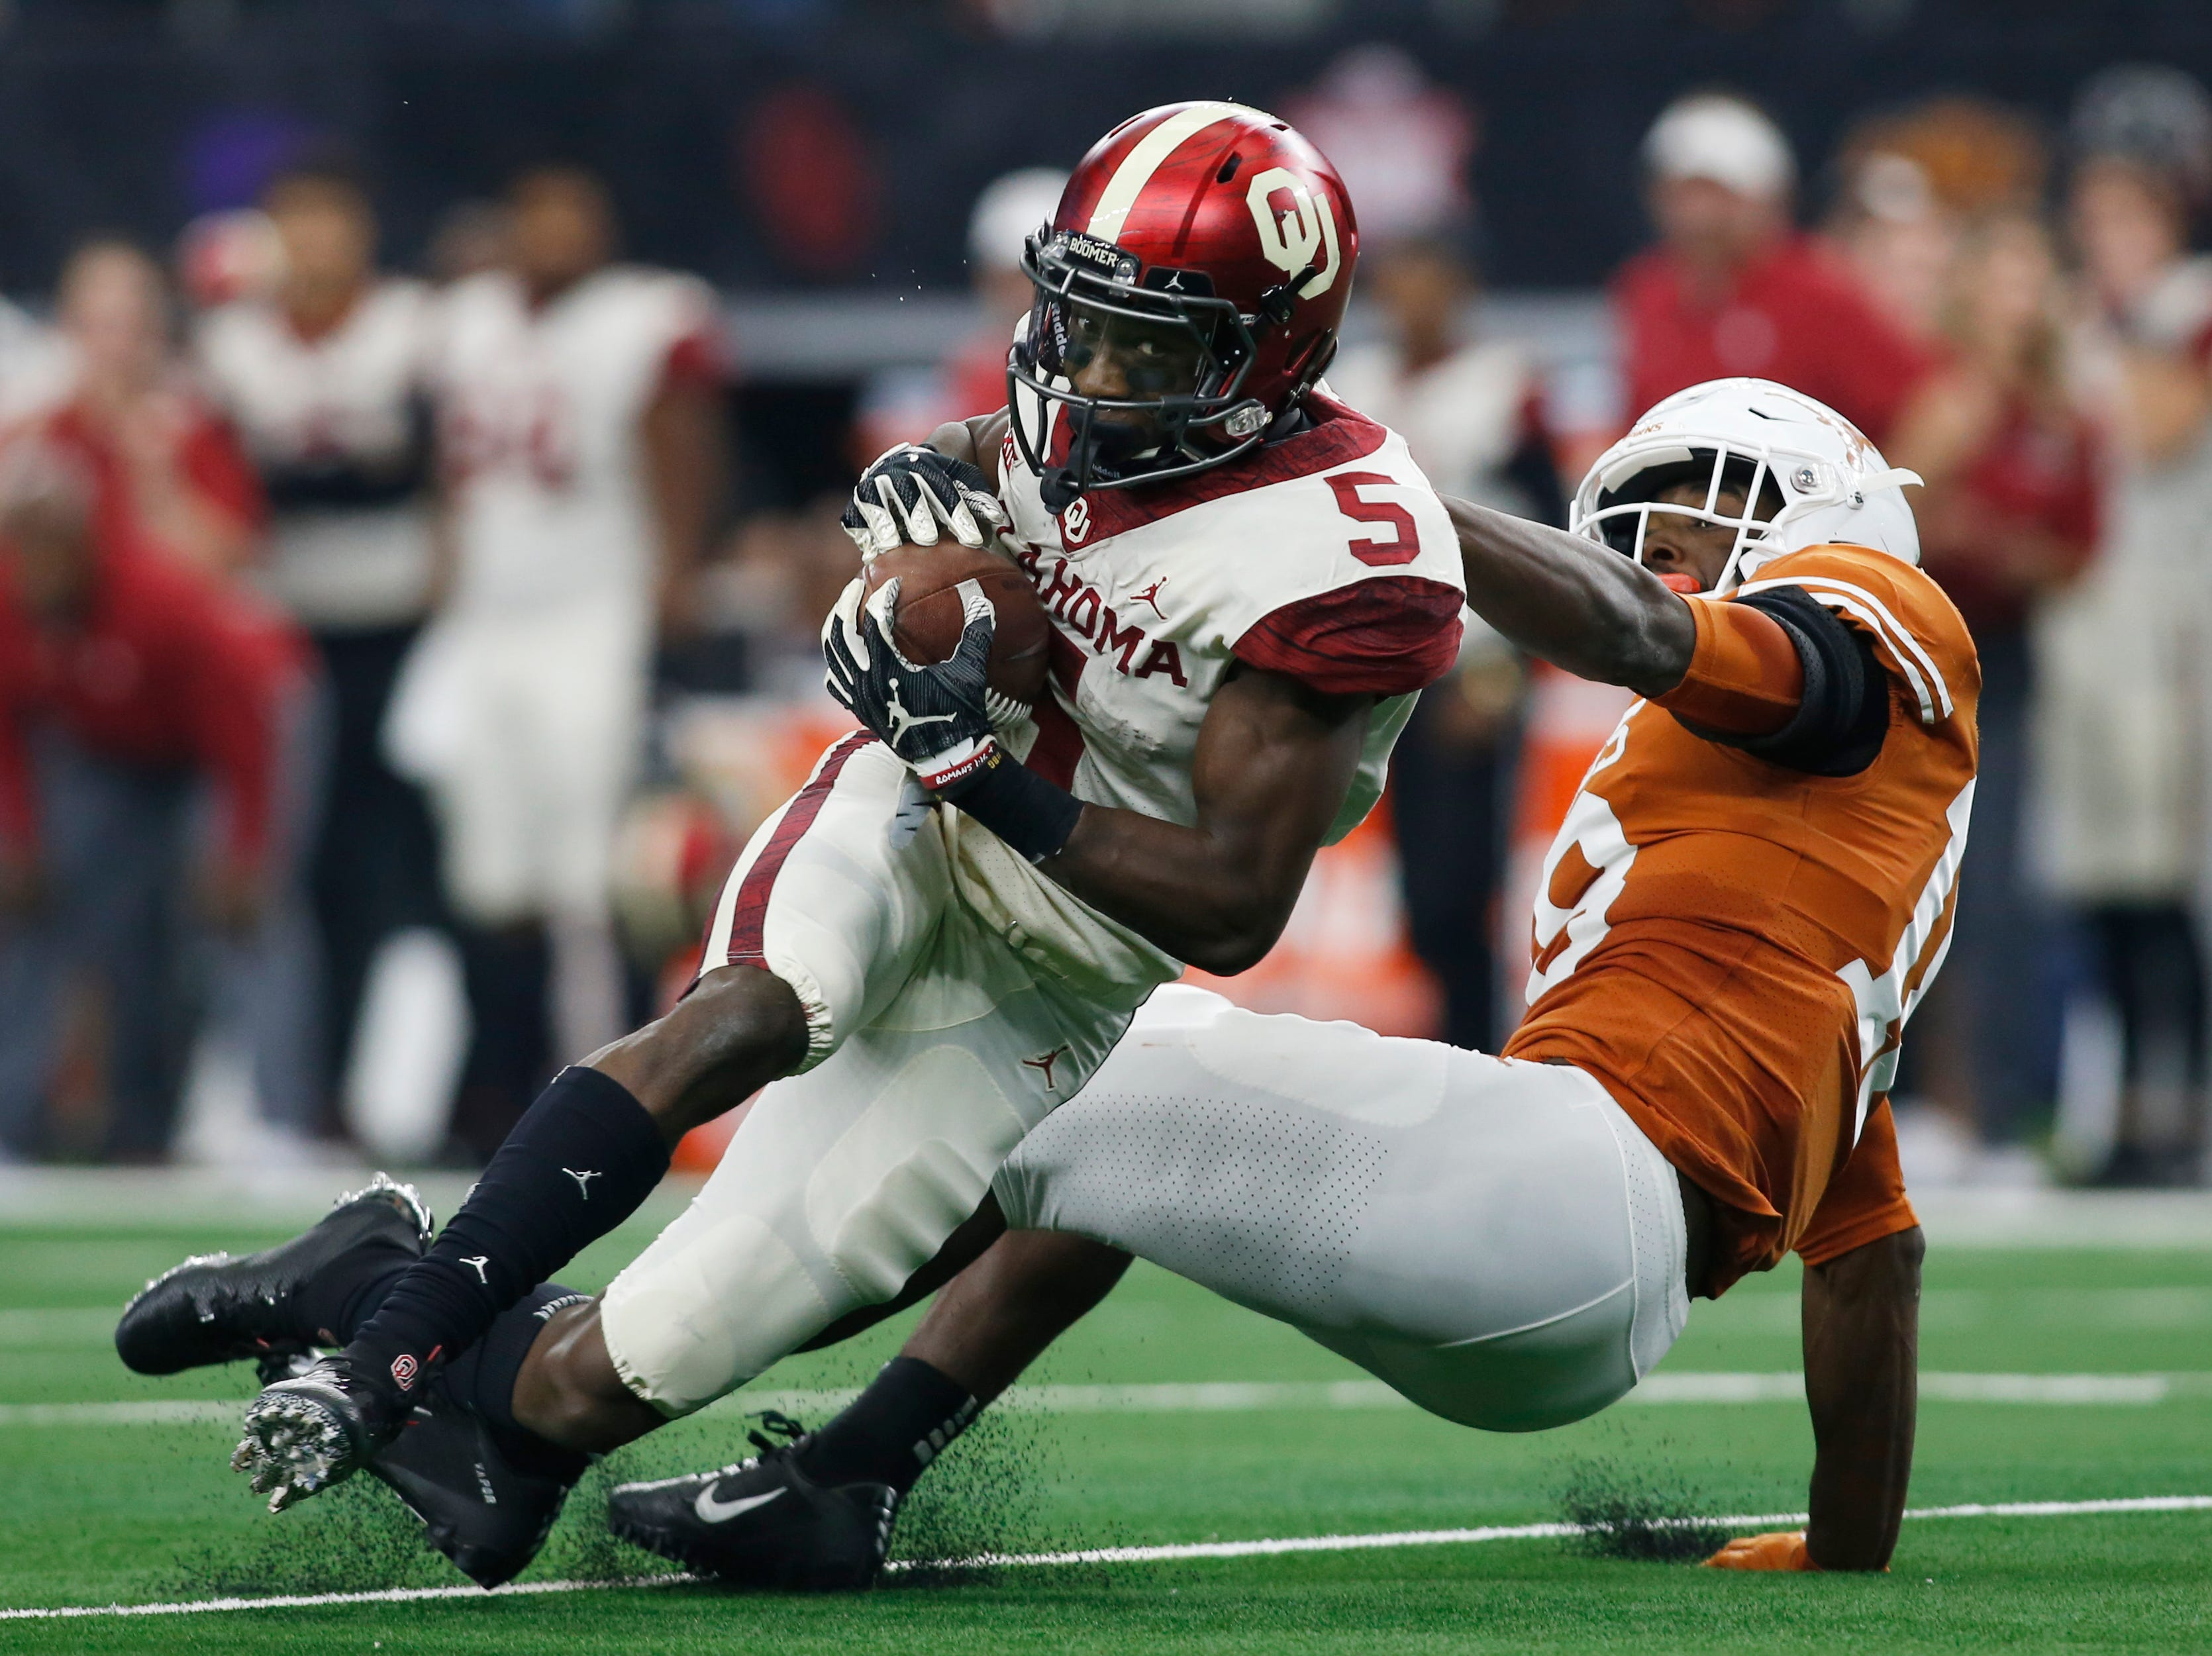 Oklahoma receiver Marquise Brown is brought down by Texas defensive back Davante Davis during the Big 12 championship game.